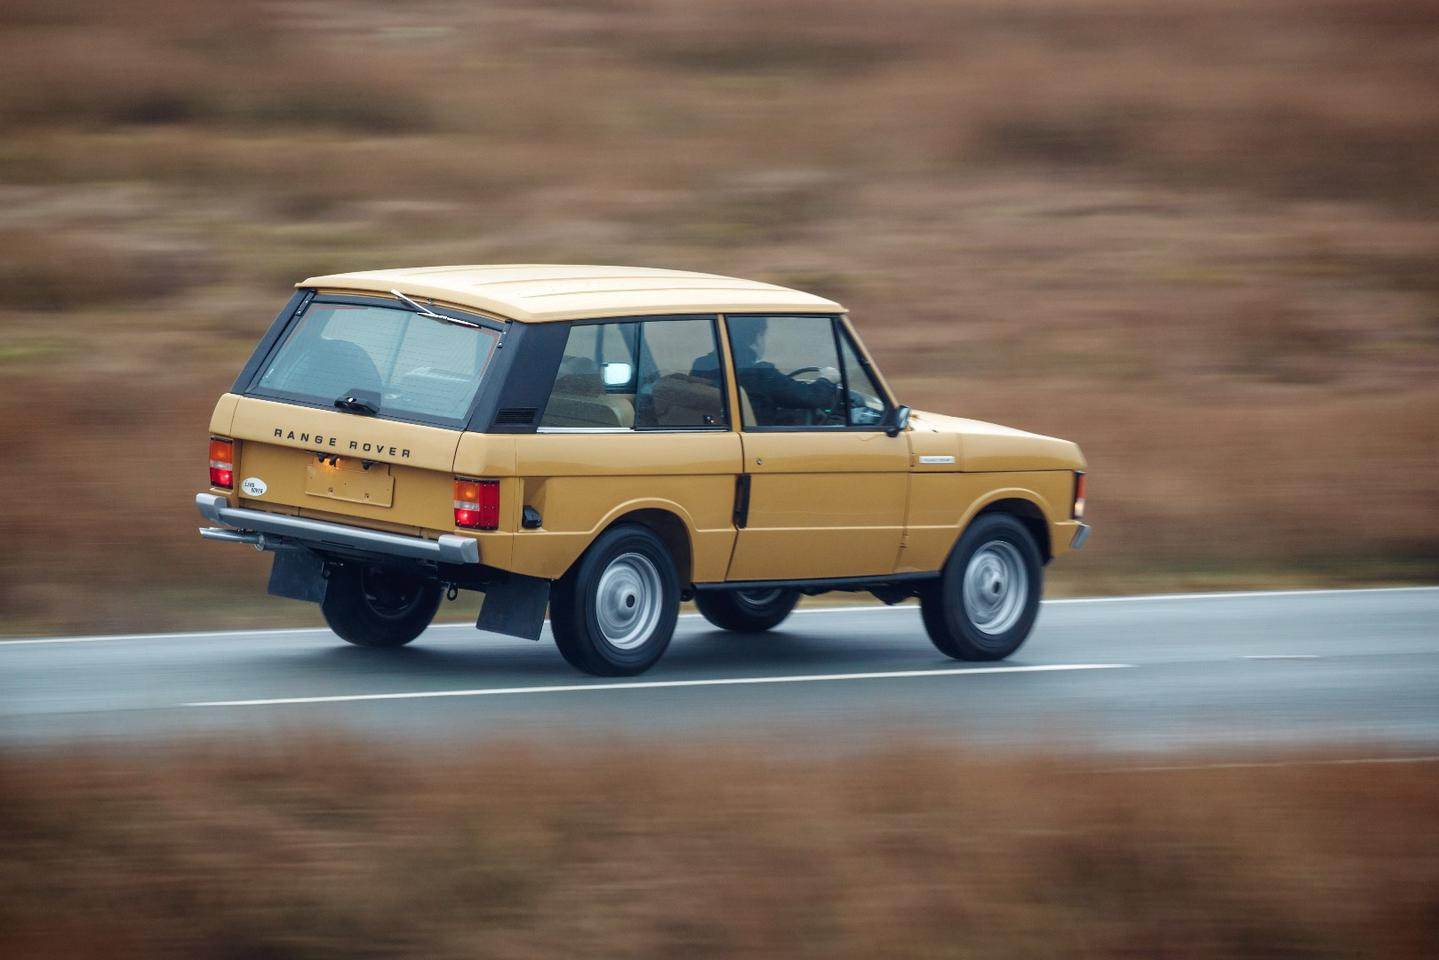 The first Range Rover Reborn is painted in Bahama Gold